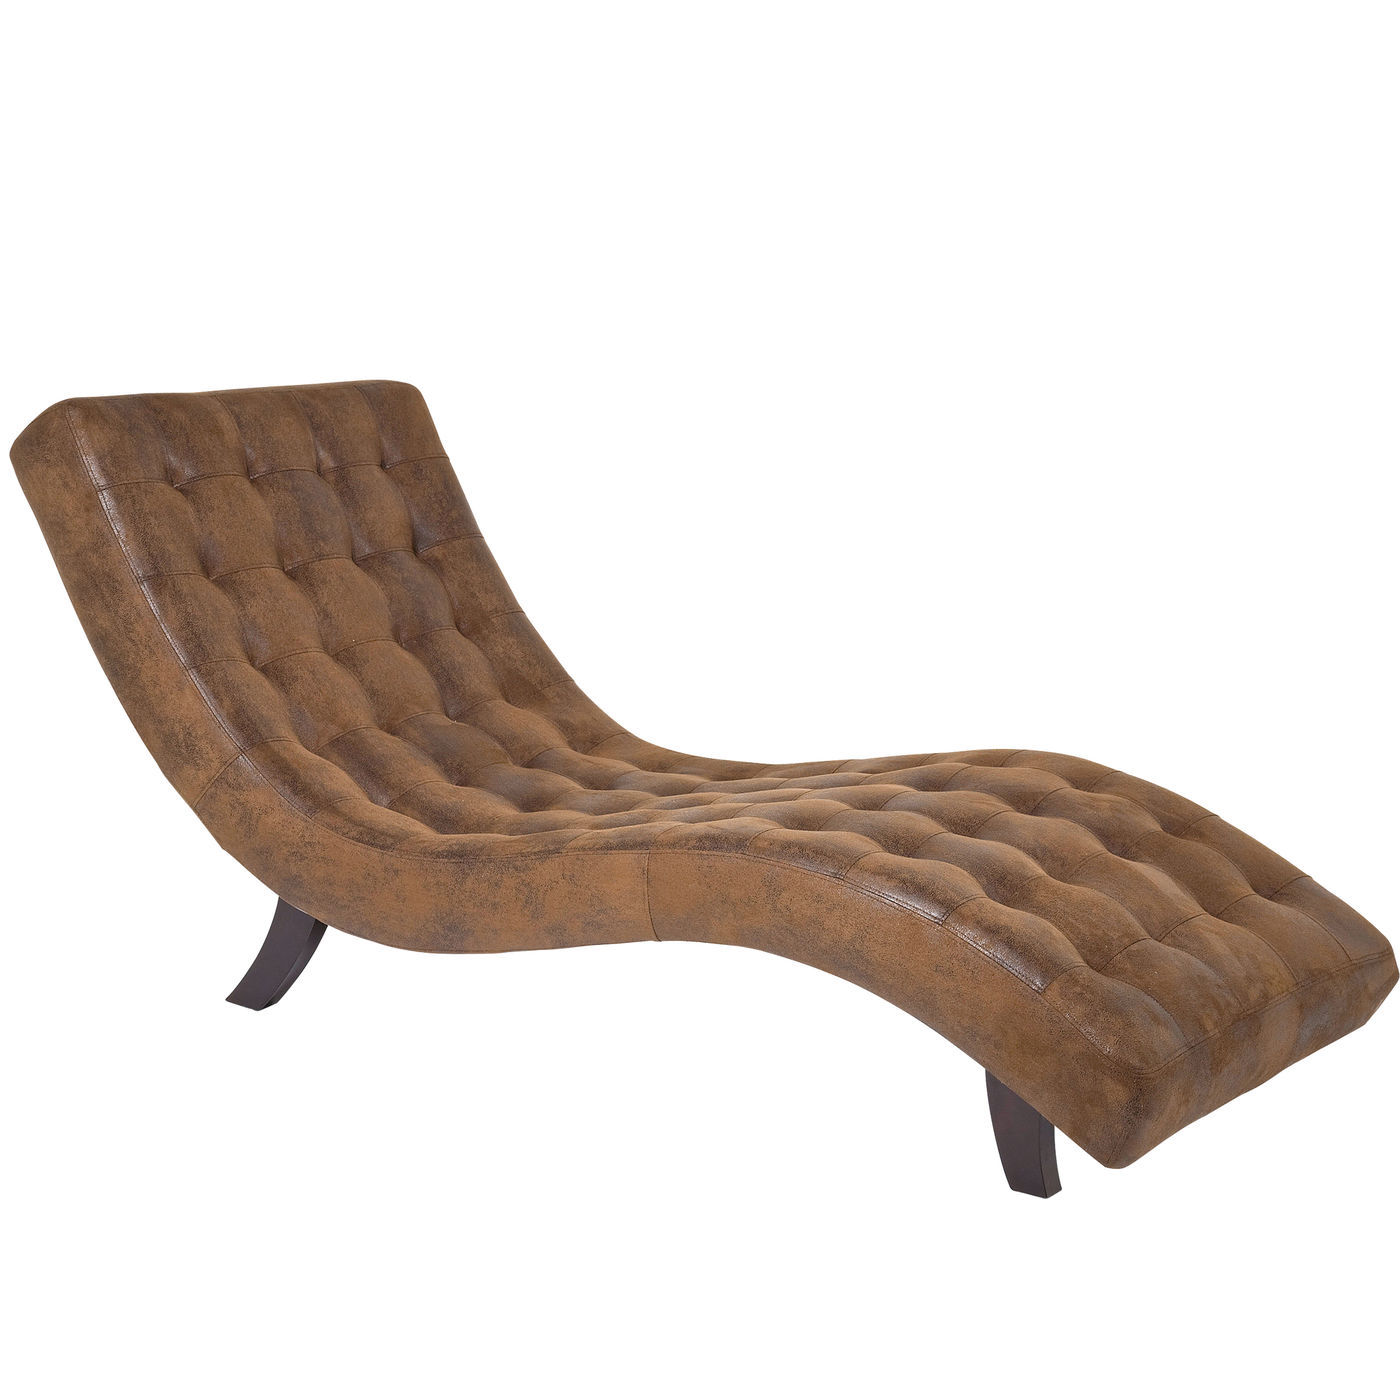 Image of   KARE DESIGN loungestol, Snake Vintage Eco